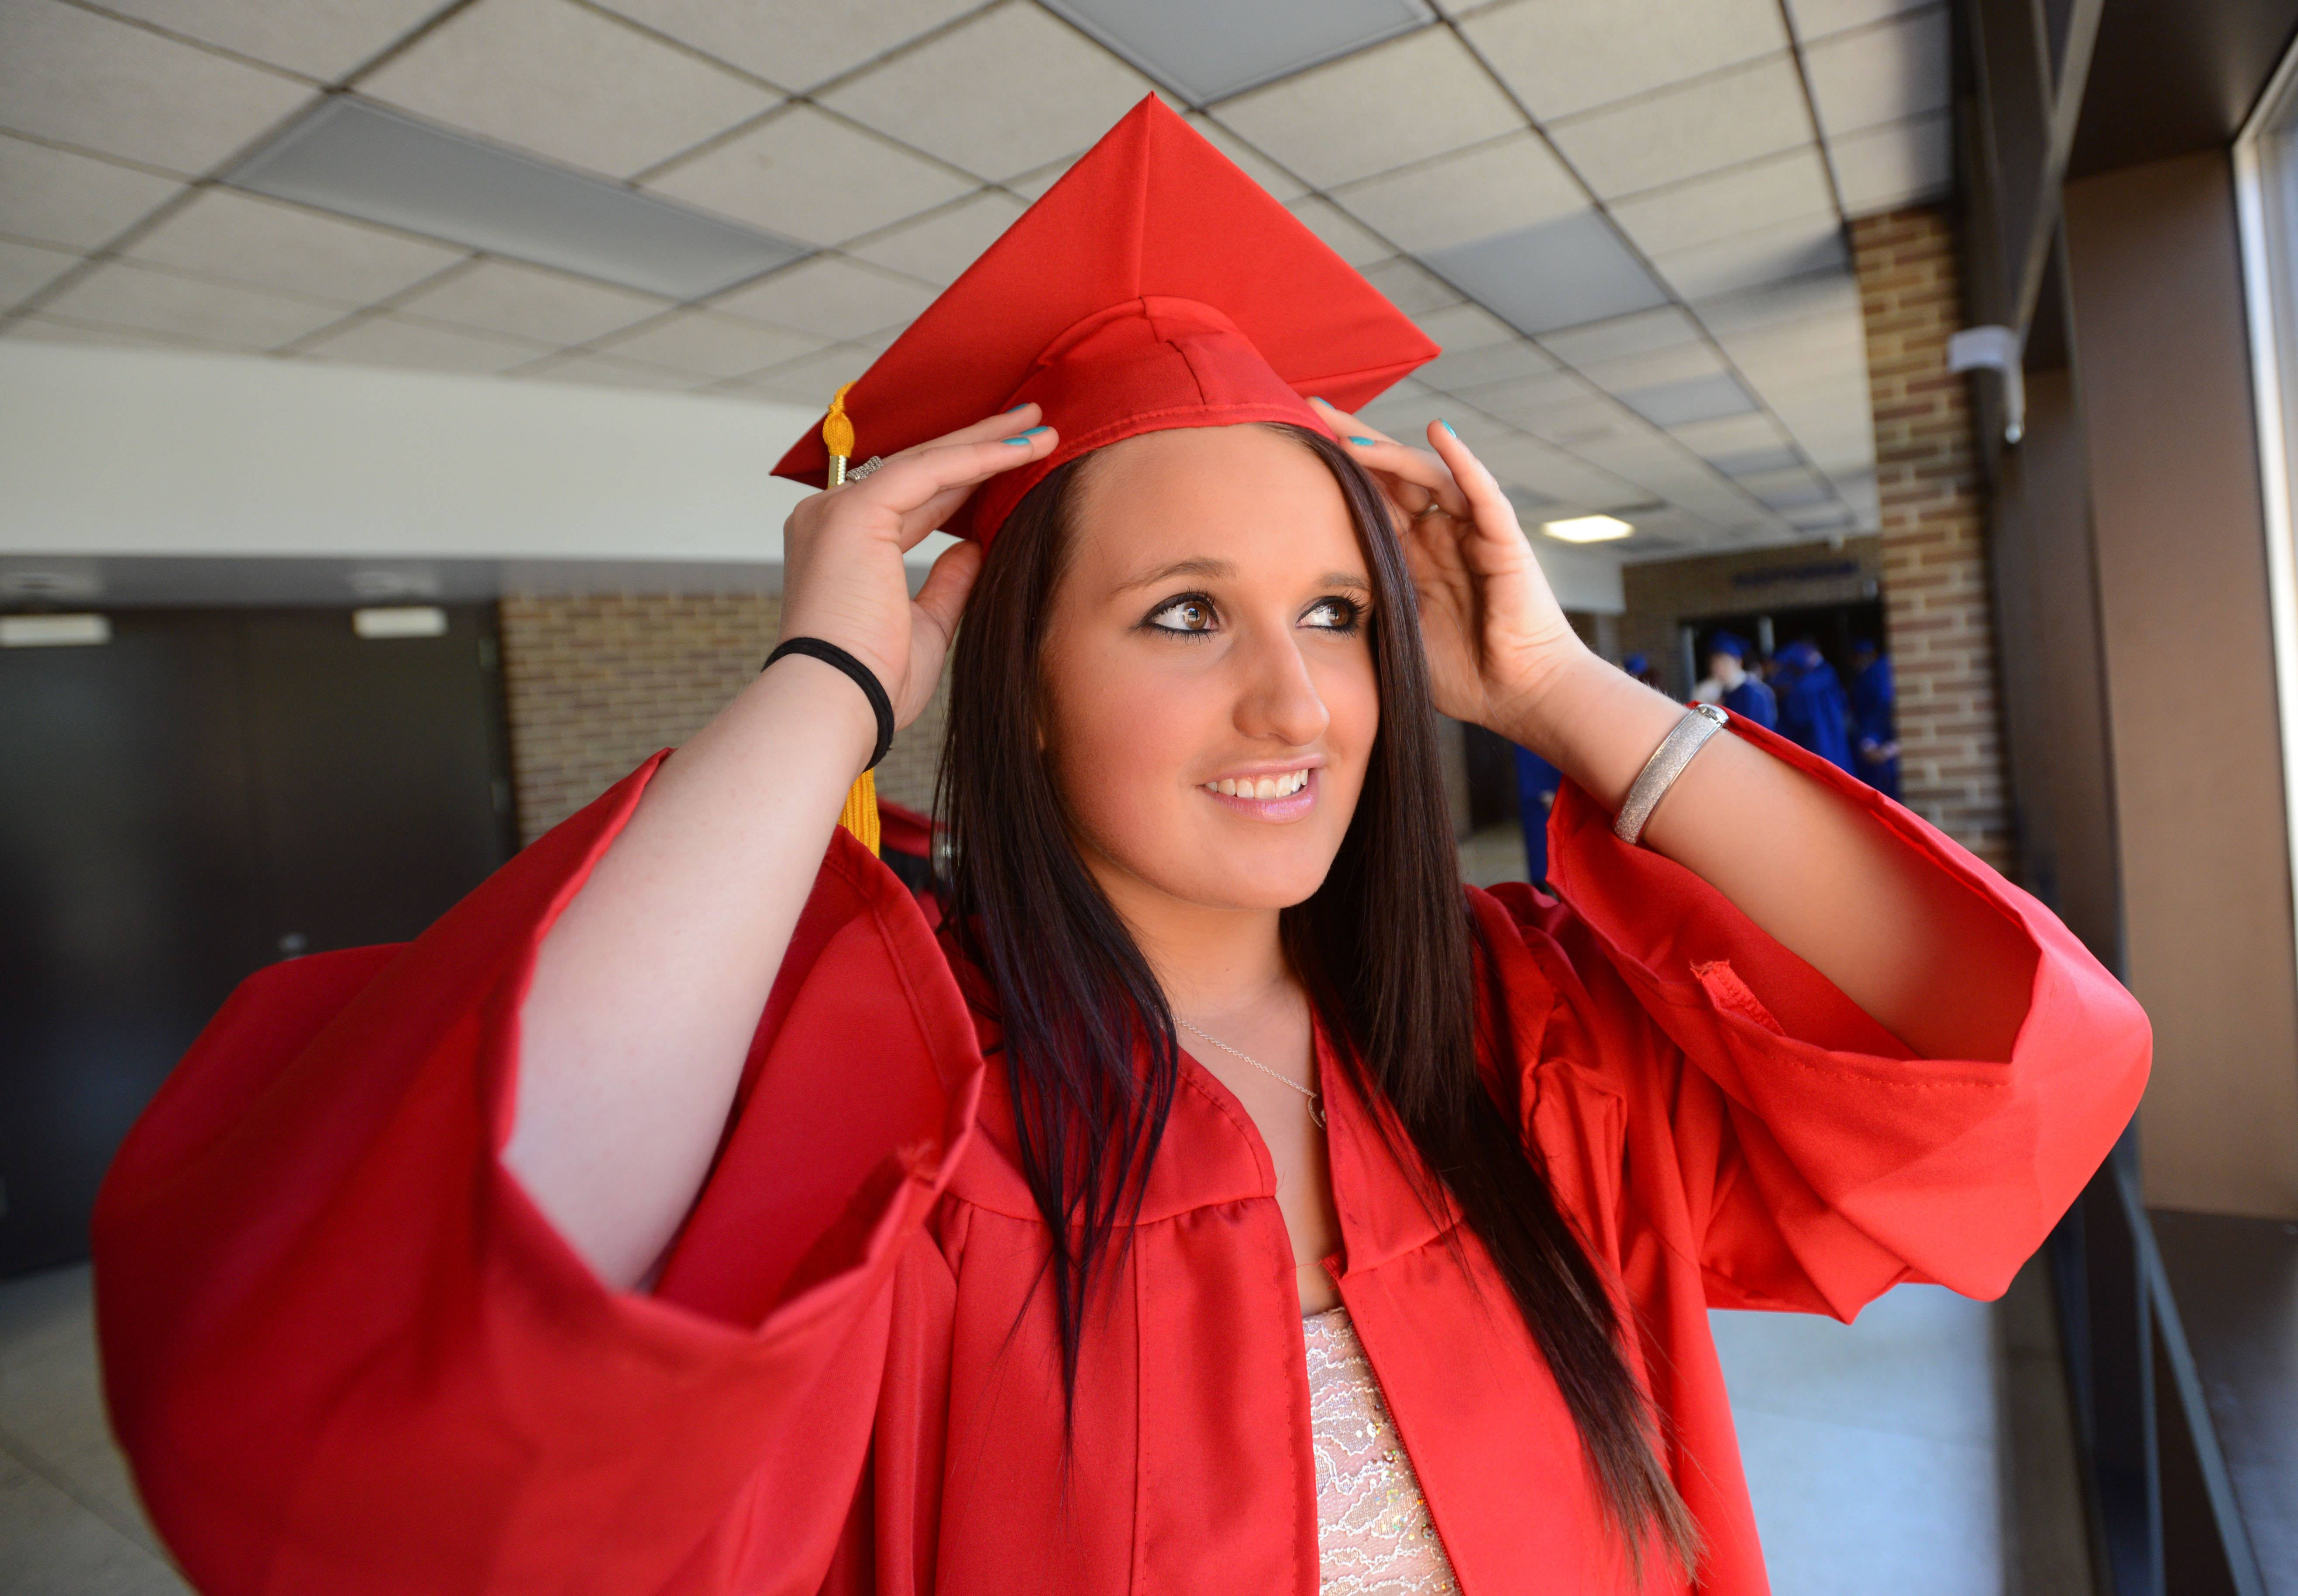 Kayla Ellingwood,18, of Wheaton makes a final adjustment before the start of the Glenbard South High School Graduation Friday.